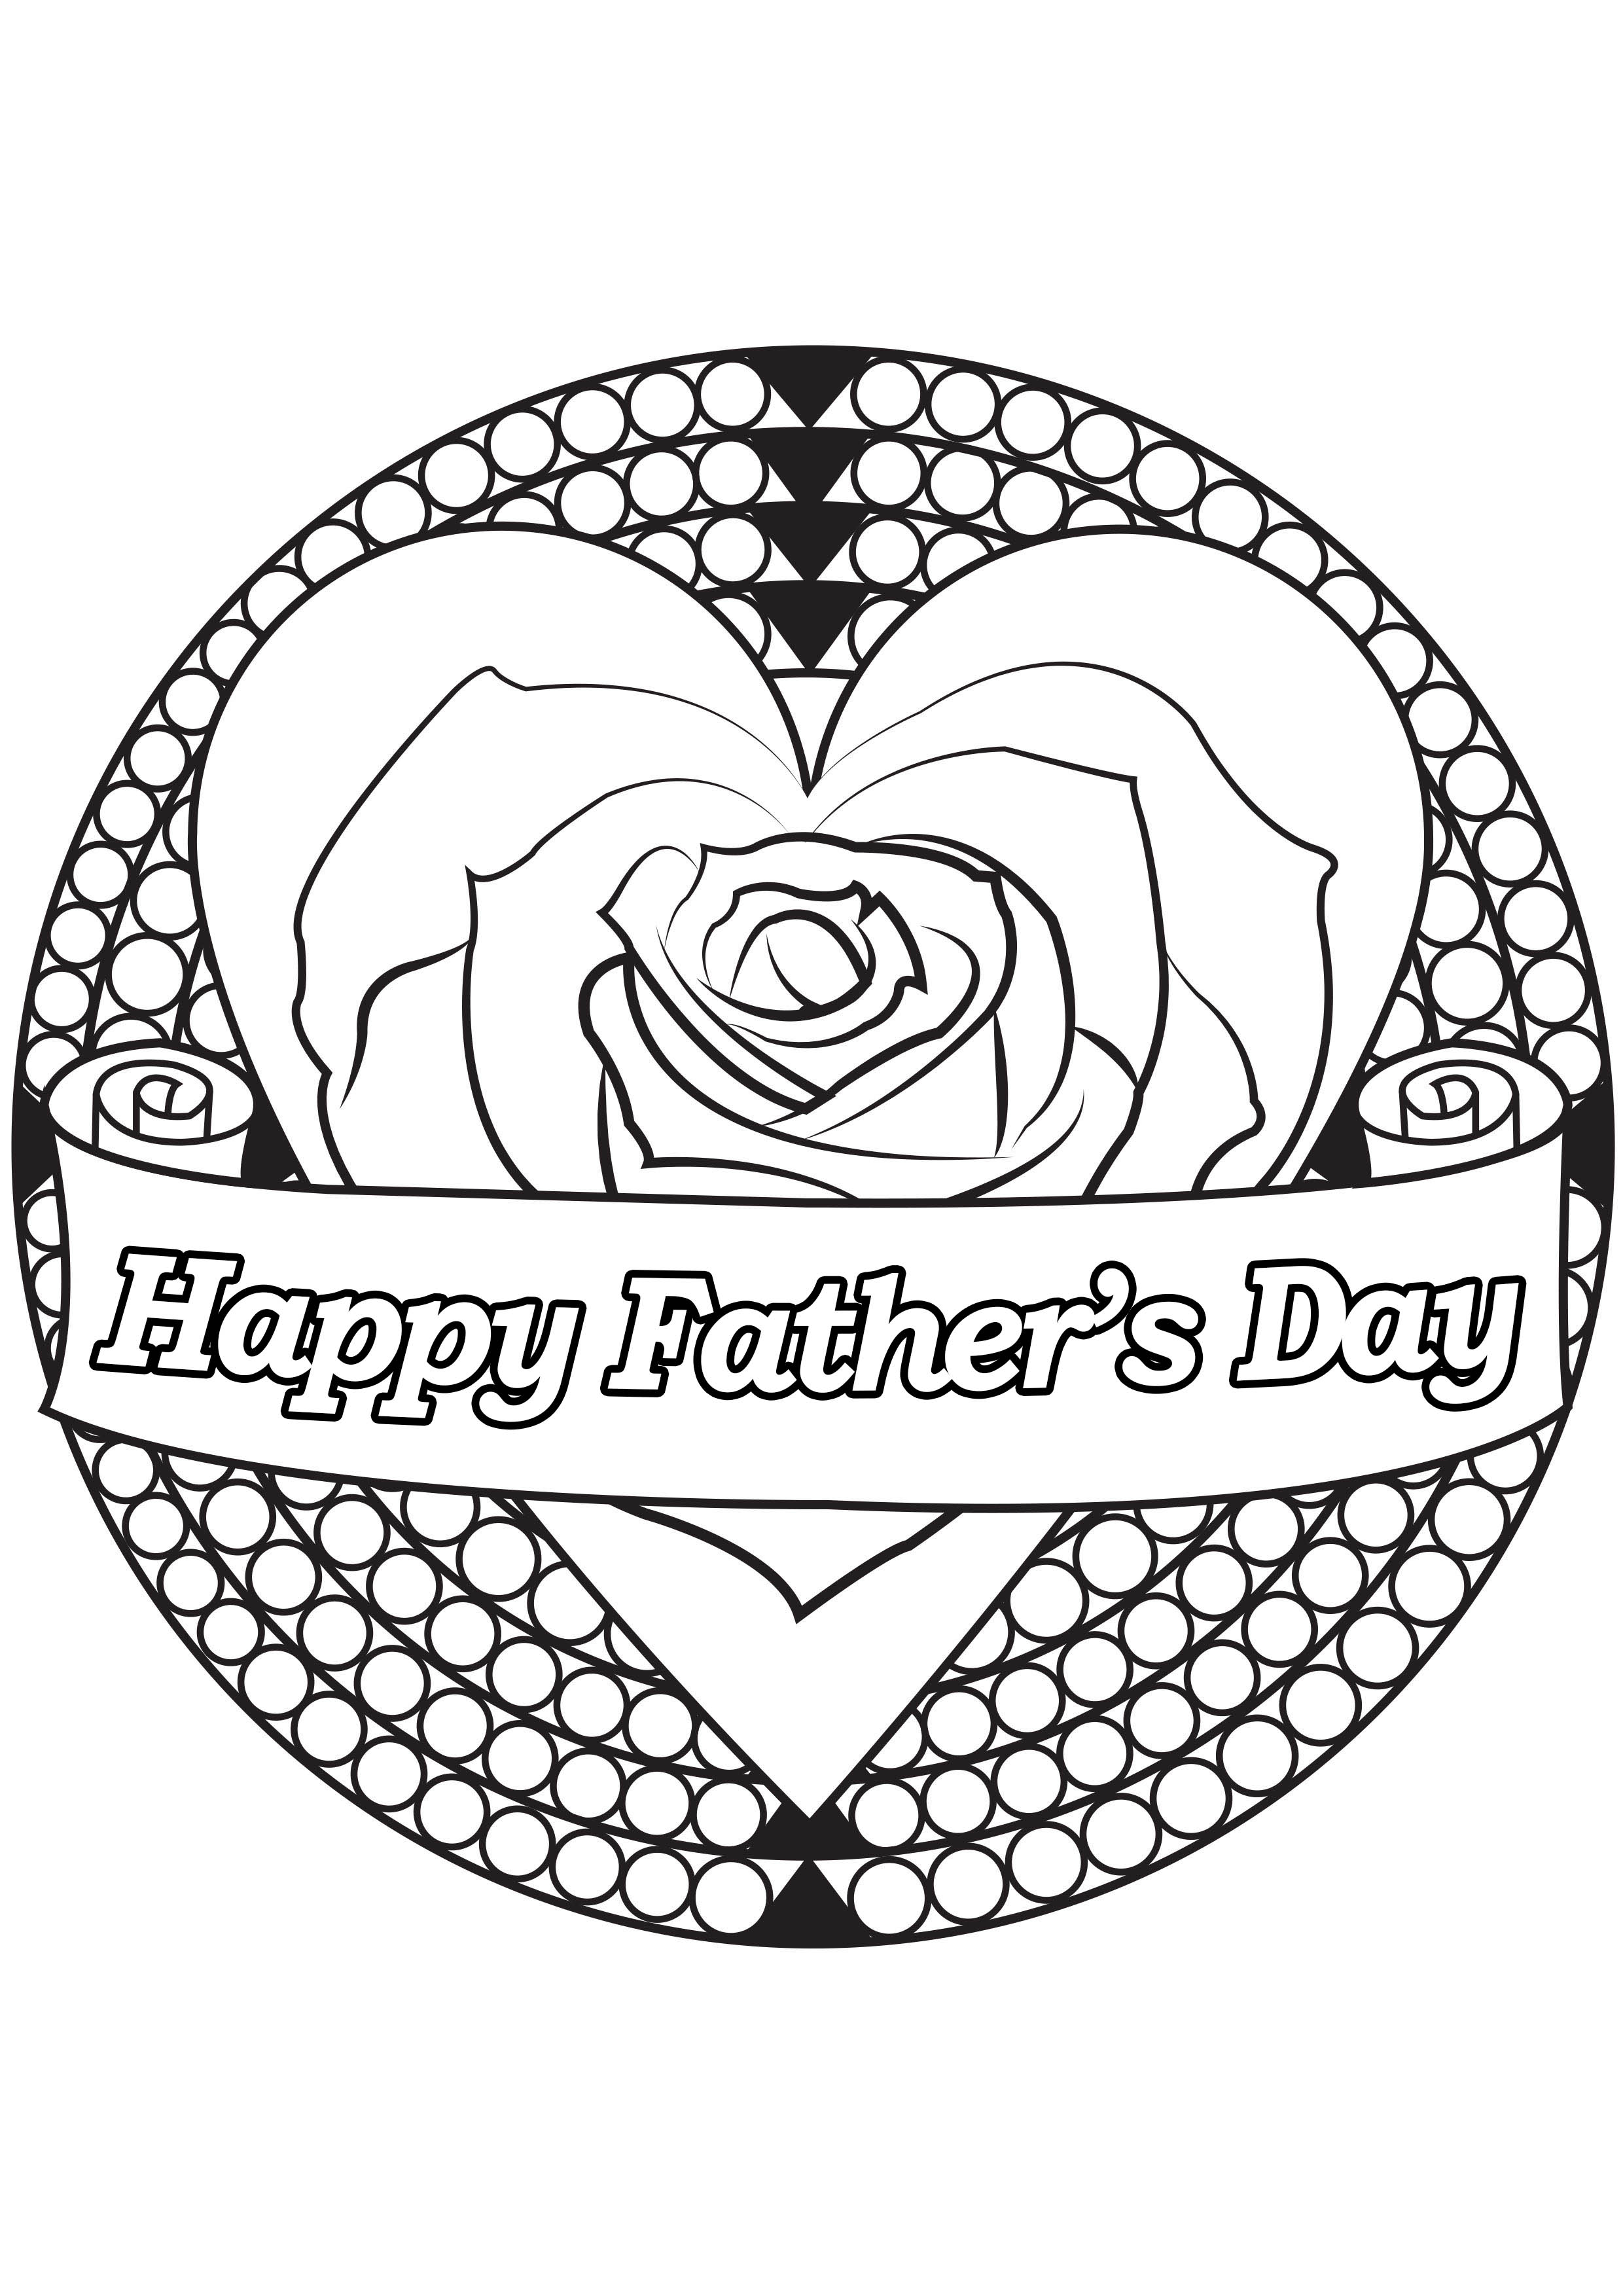 Father's day coloring page : heart & rose